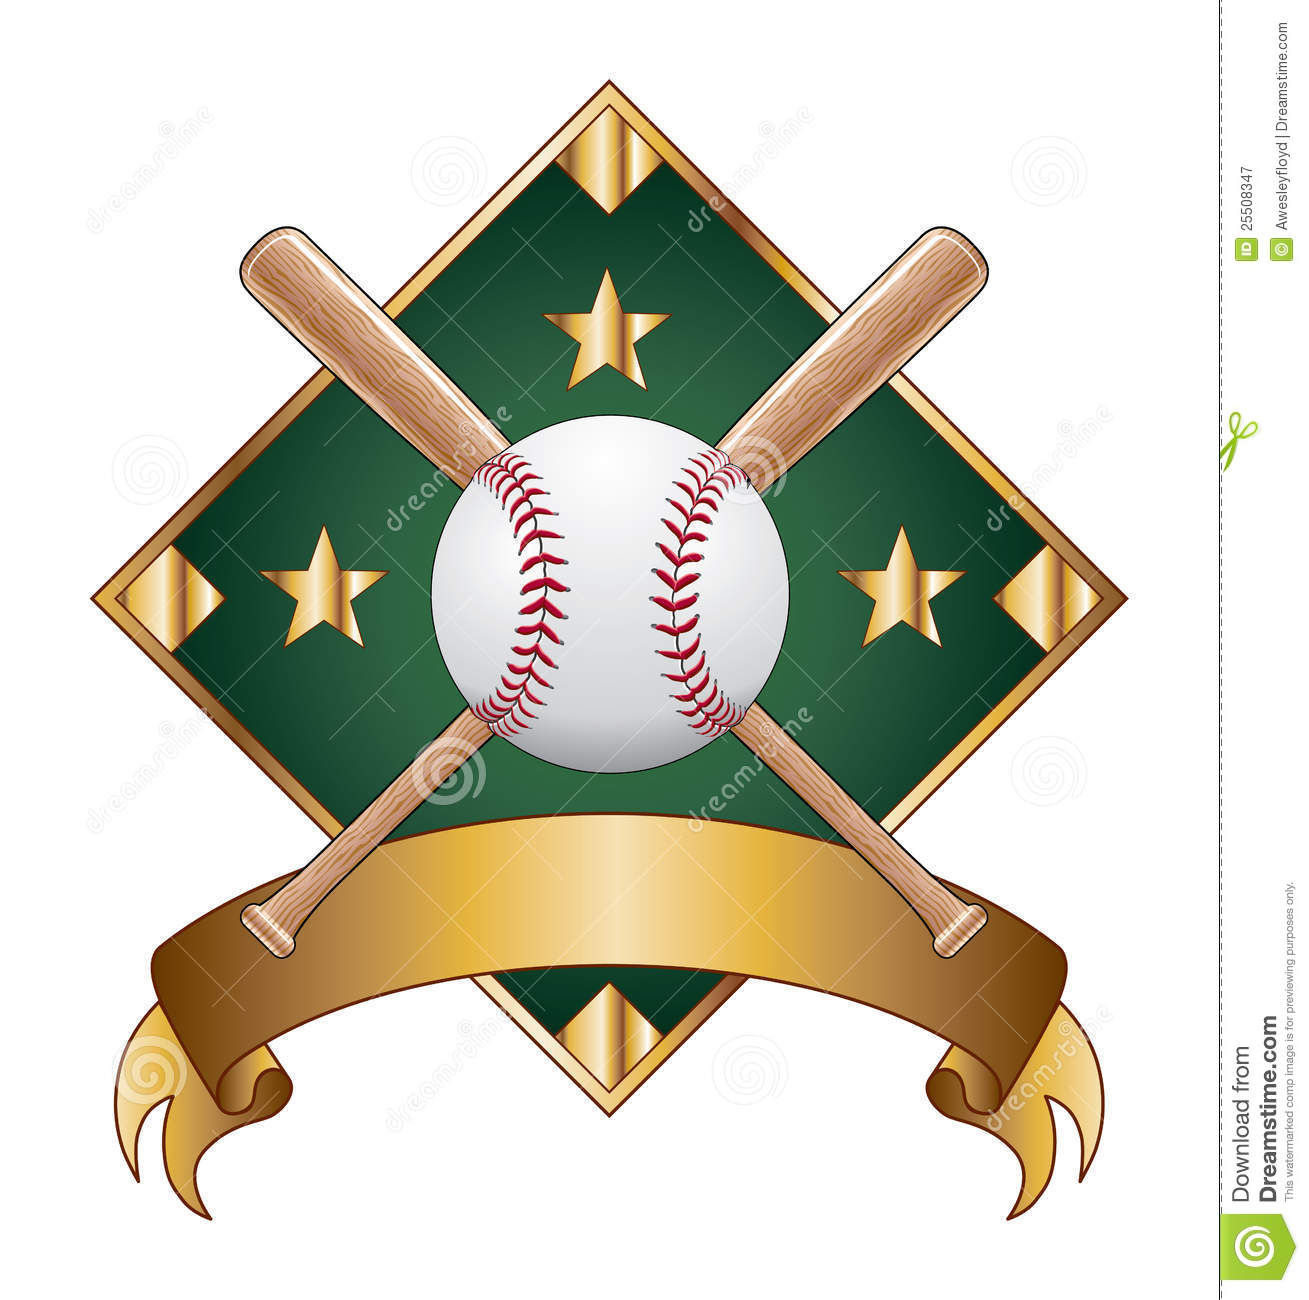 baseball diamond stock illustrations 636 baseball diamond stock